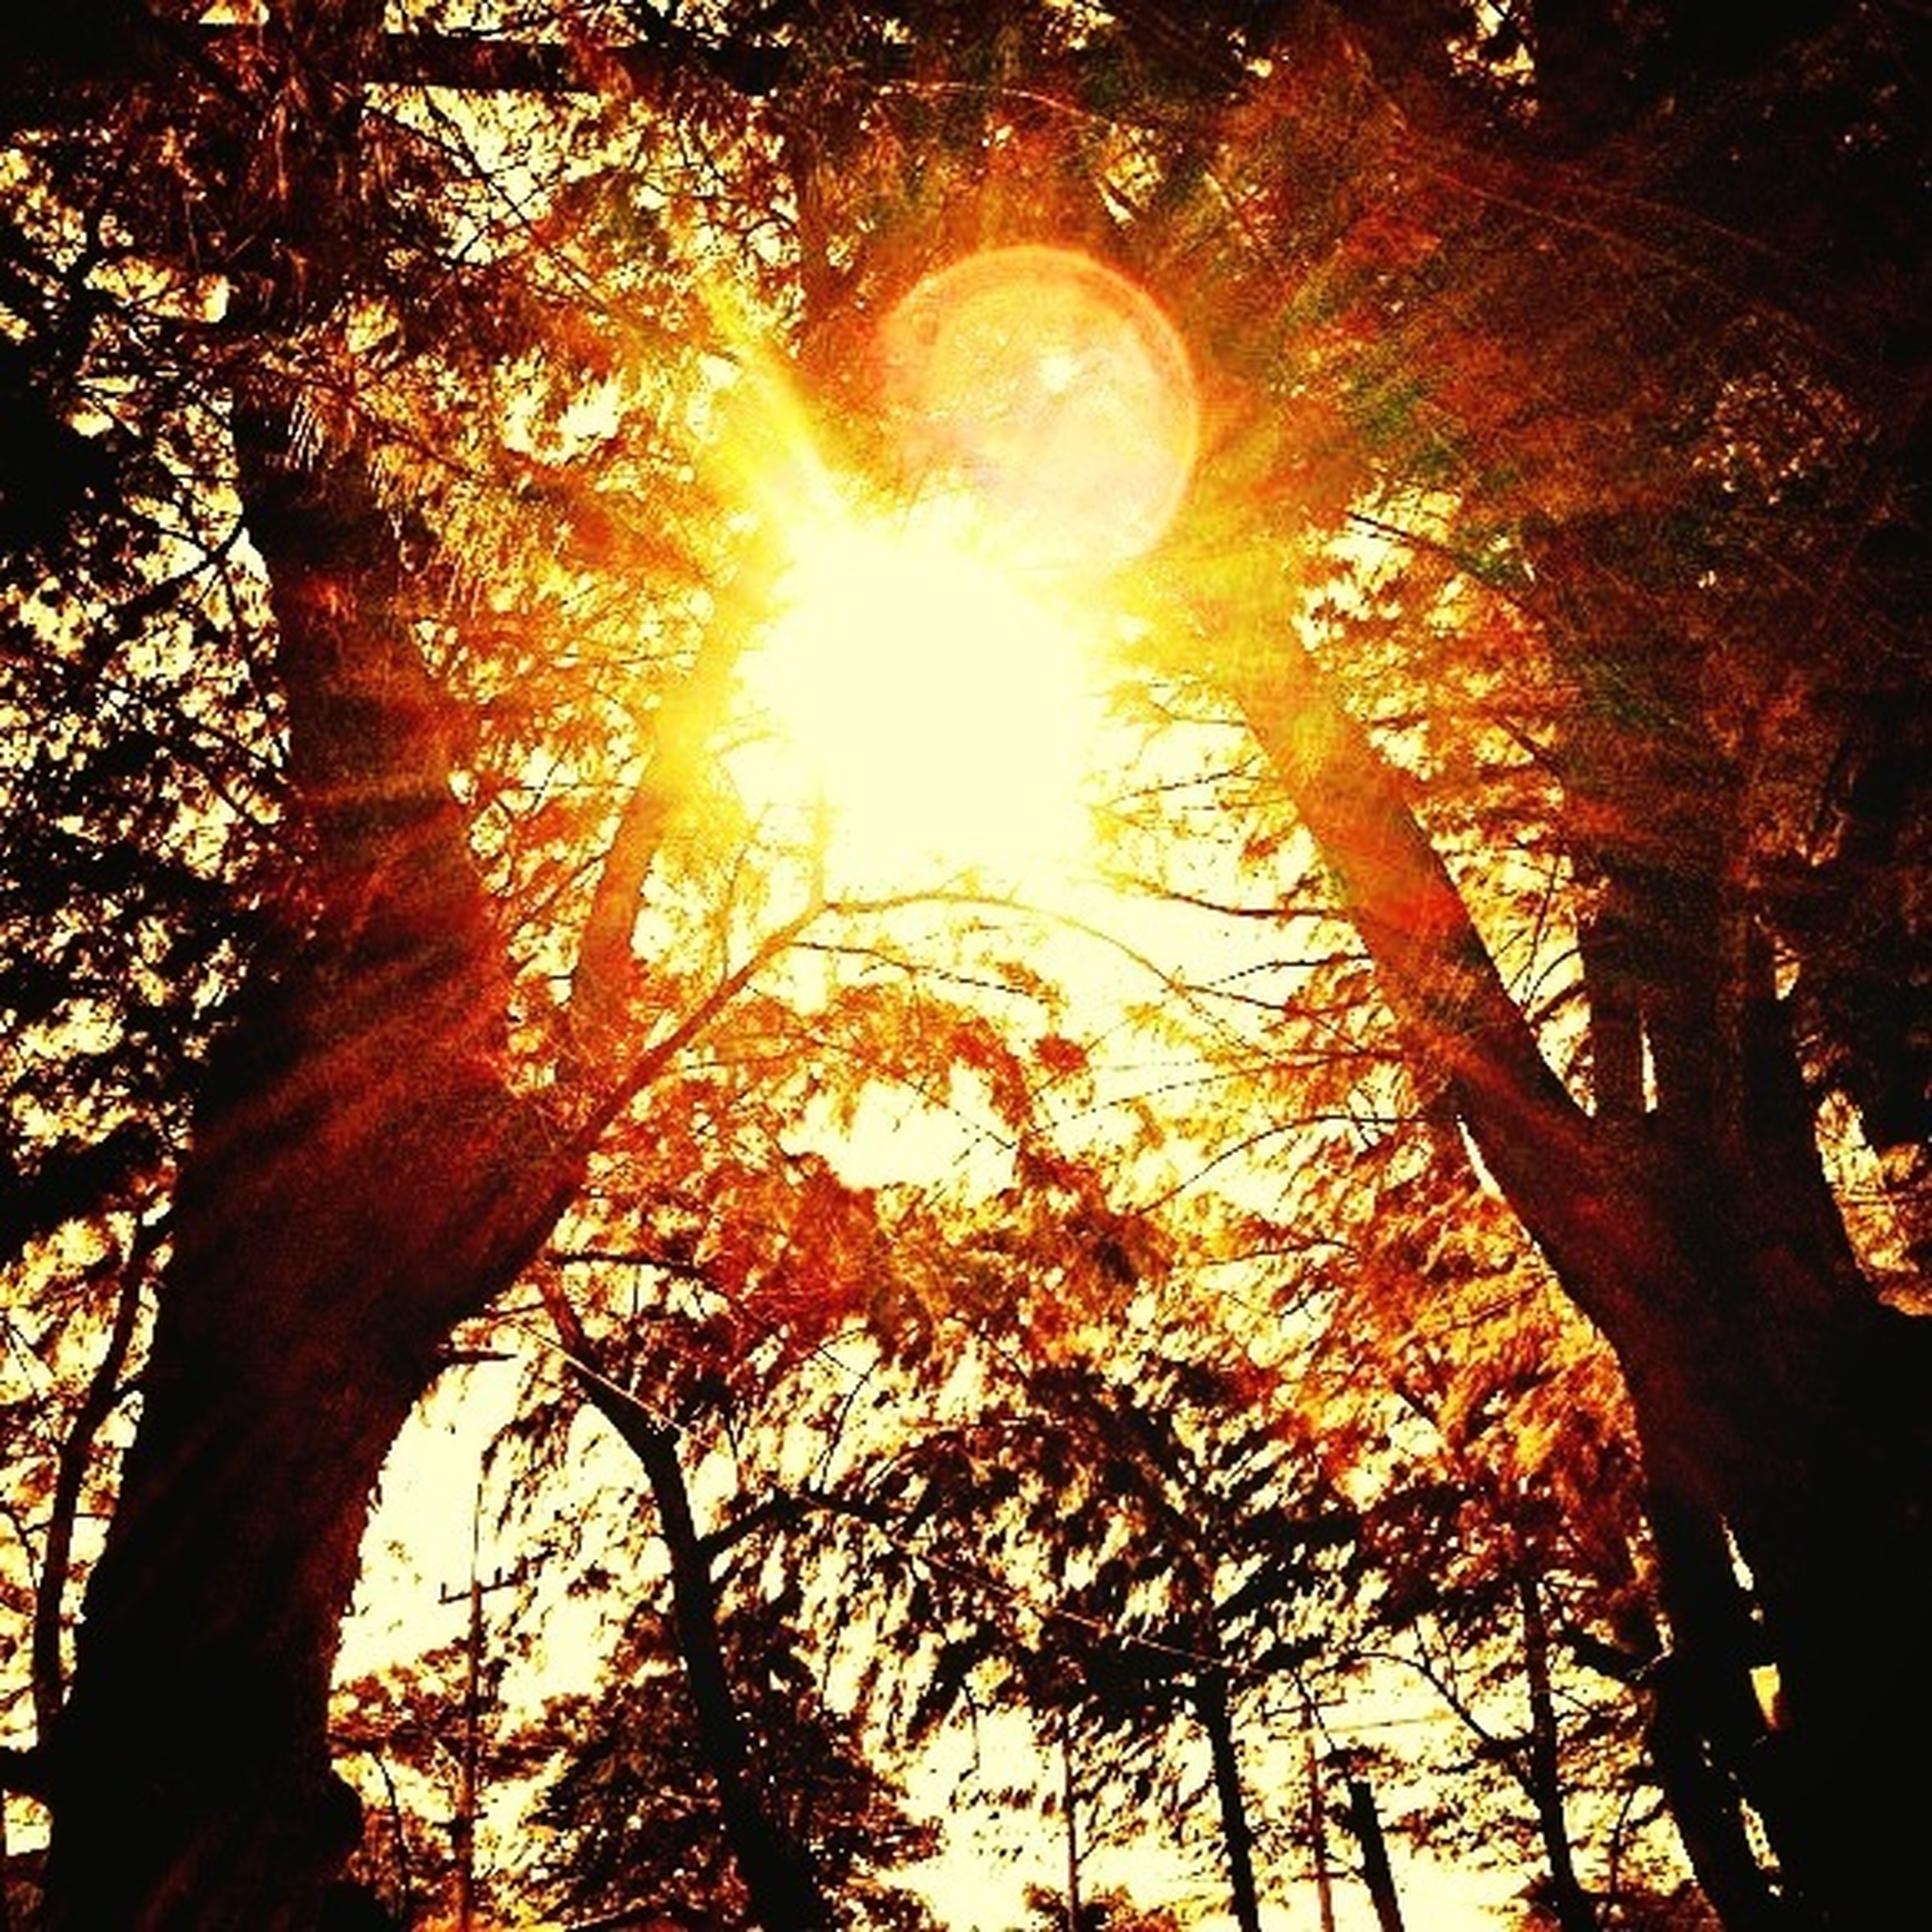 tree, sun, low angle view, sunbeam, branch, sunlight, lens flare, tranquility, growth, back lit, silhouette, nature, streaming, tree trunk, beauty in nature, sky, bright, no people, scenics, glowing